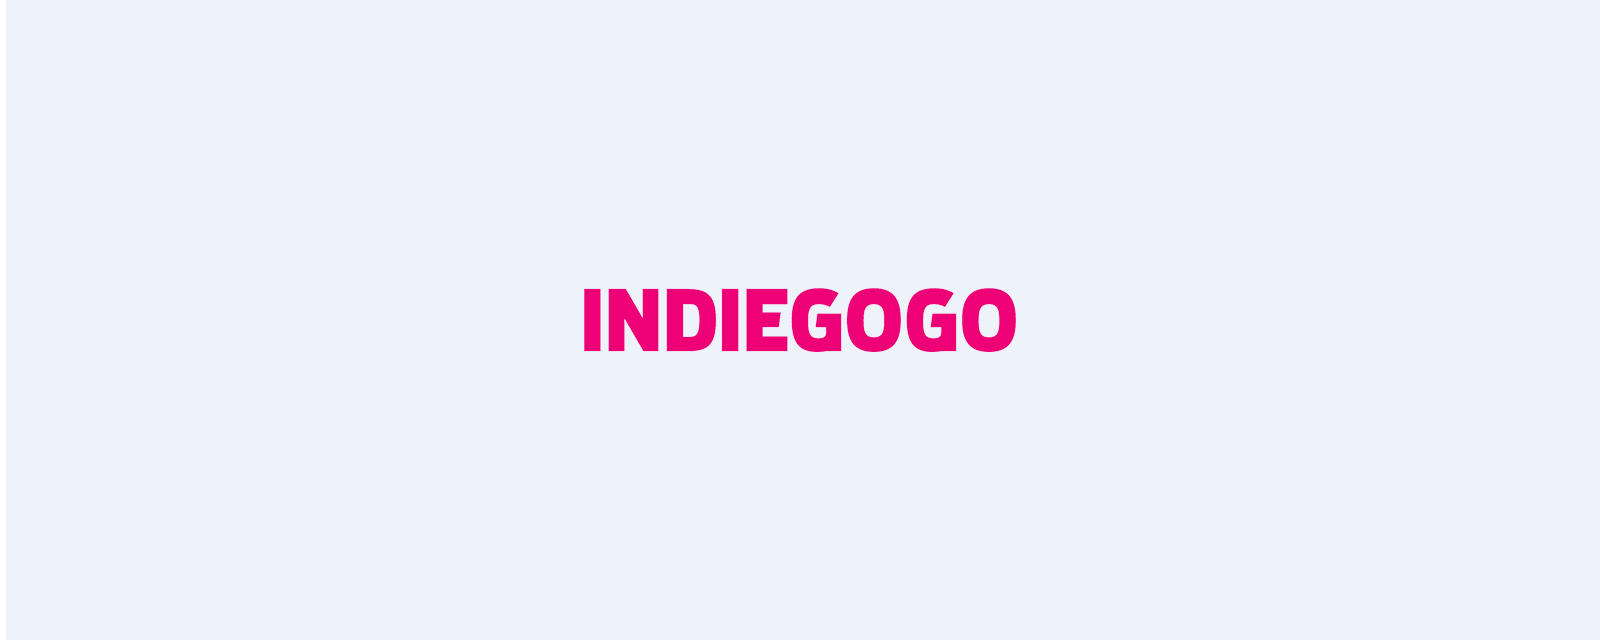 Check out Indiegogo's fundraising site.